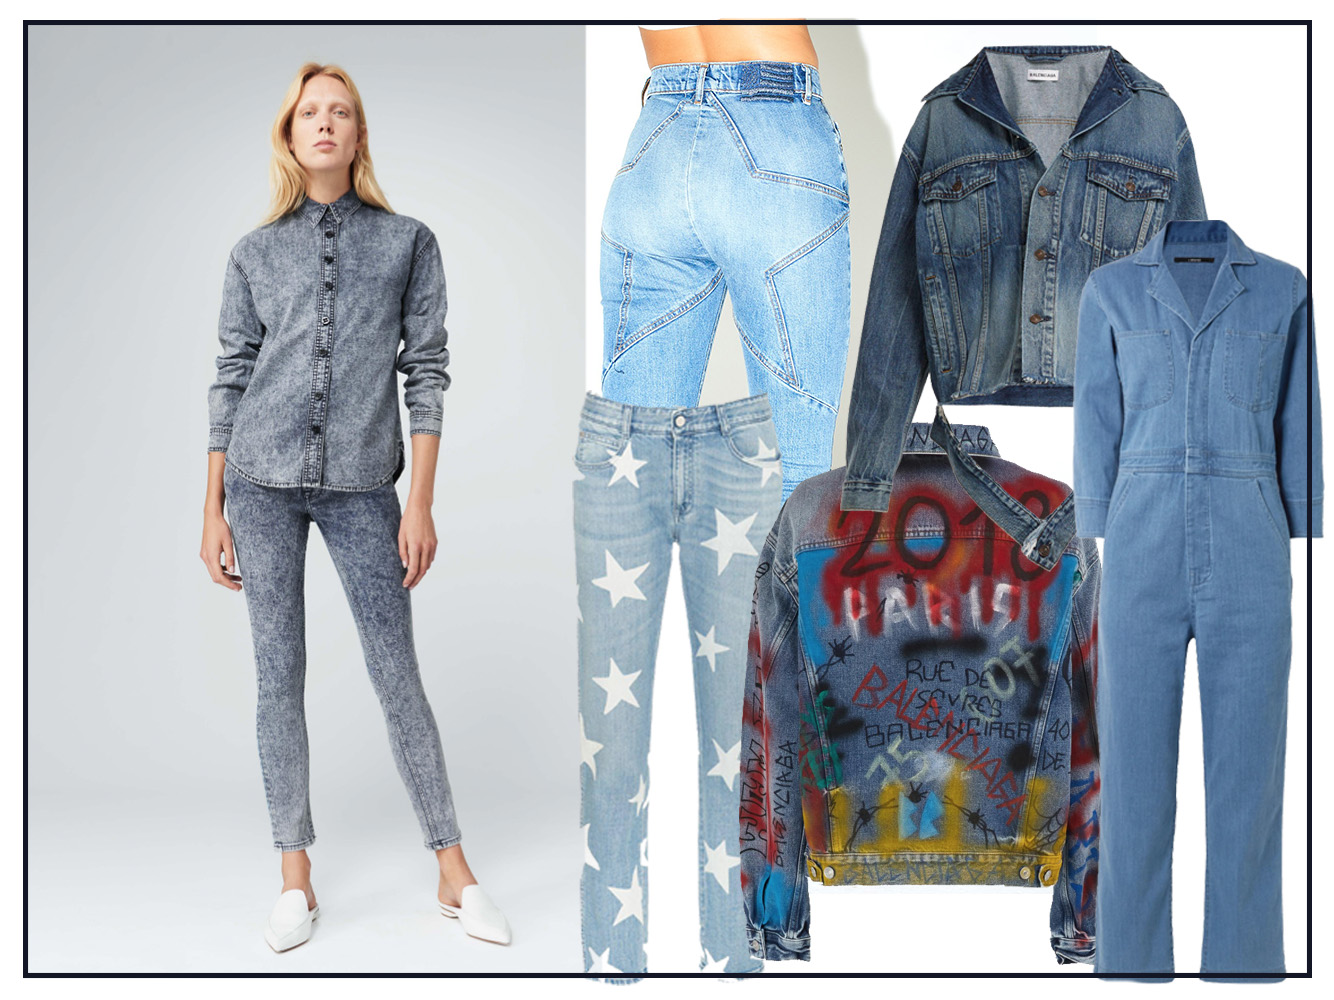 A variety of denim: Victoria Beckham, Revice Venus Crops, Balenciaga jackets, J Brand jumpsuit and Stella McCartney star jeans.